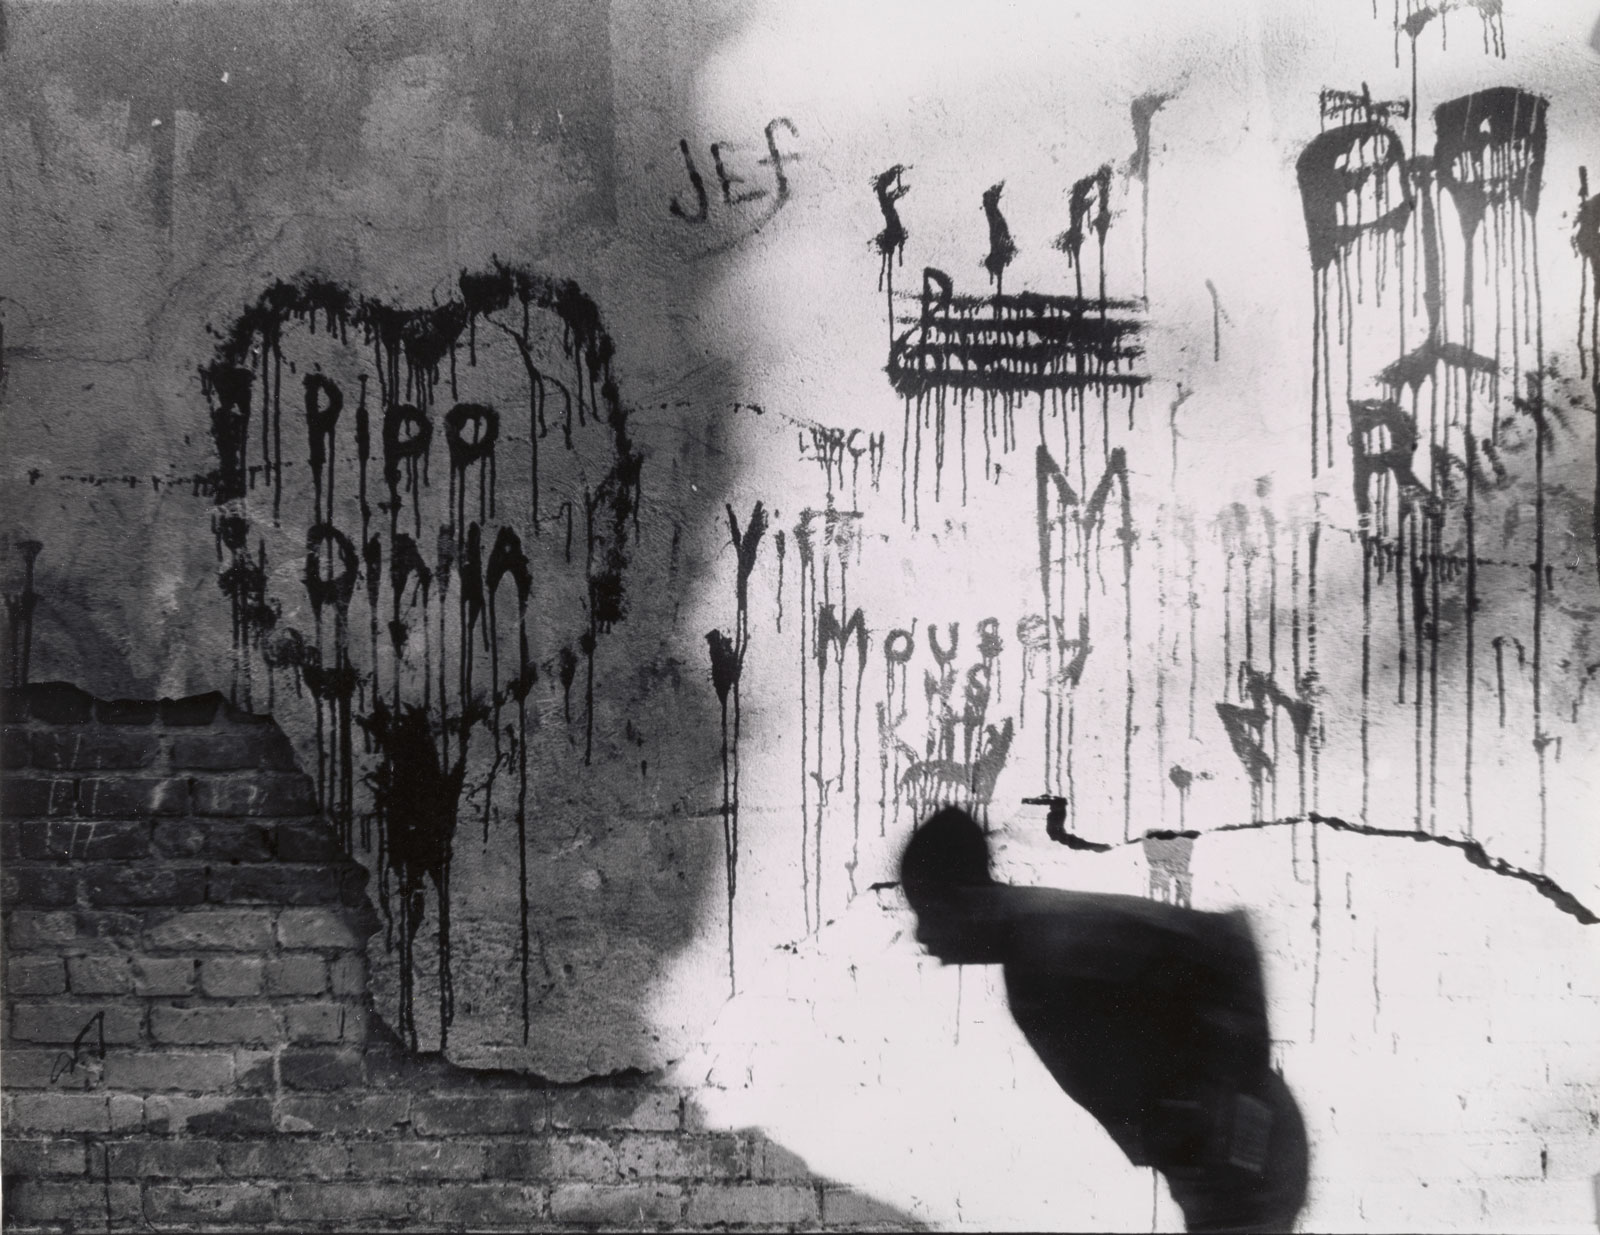 Graffiti bleeding down a wall, as a stooped man passes by